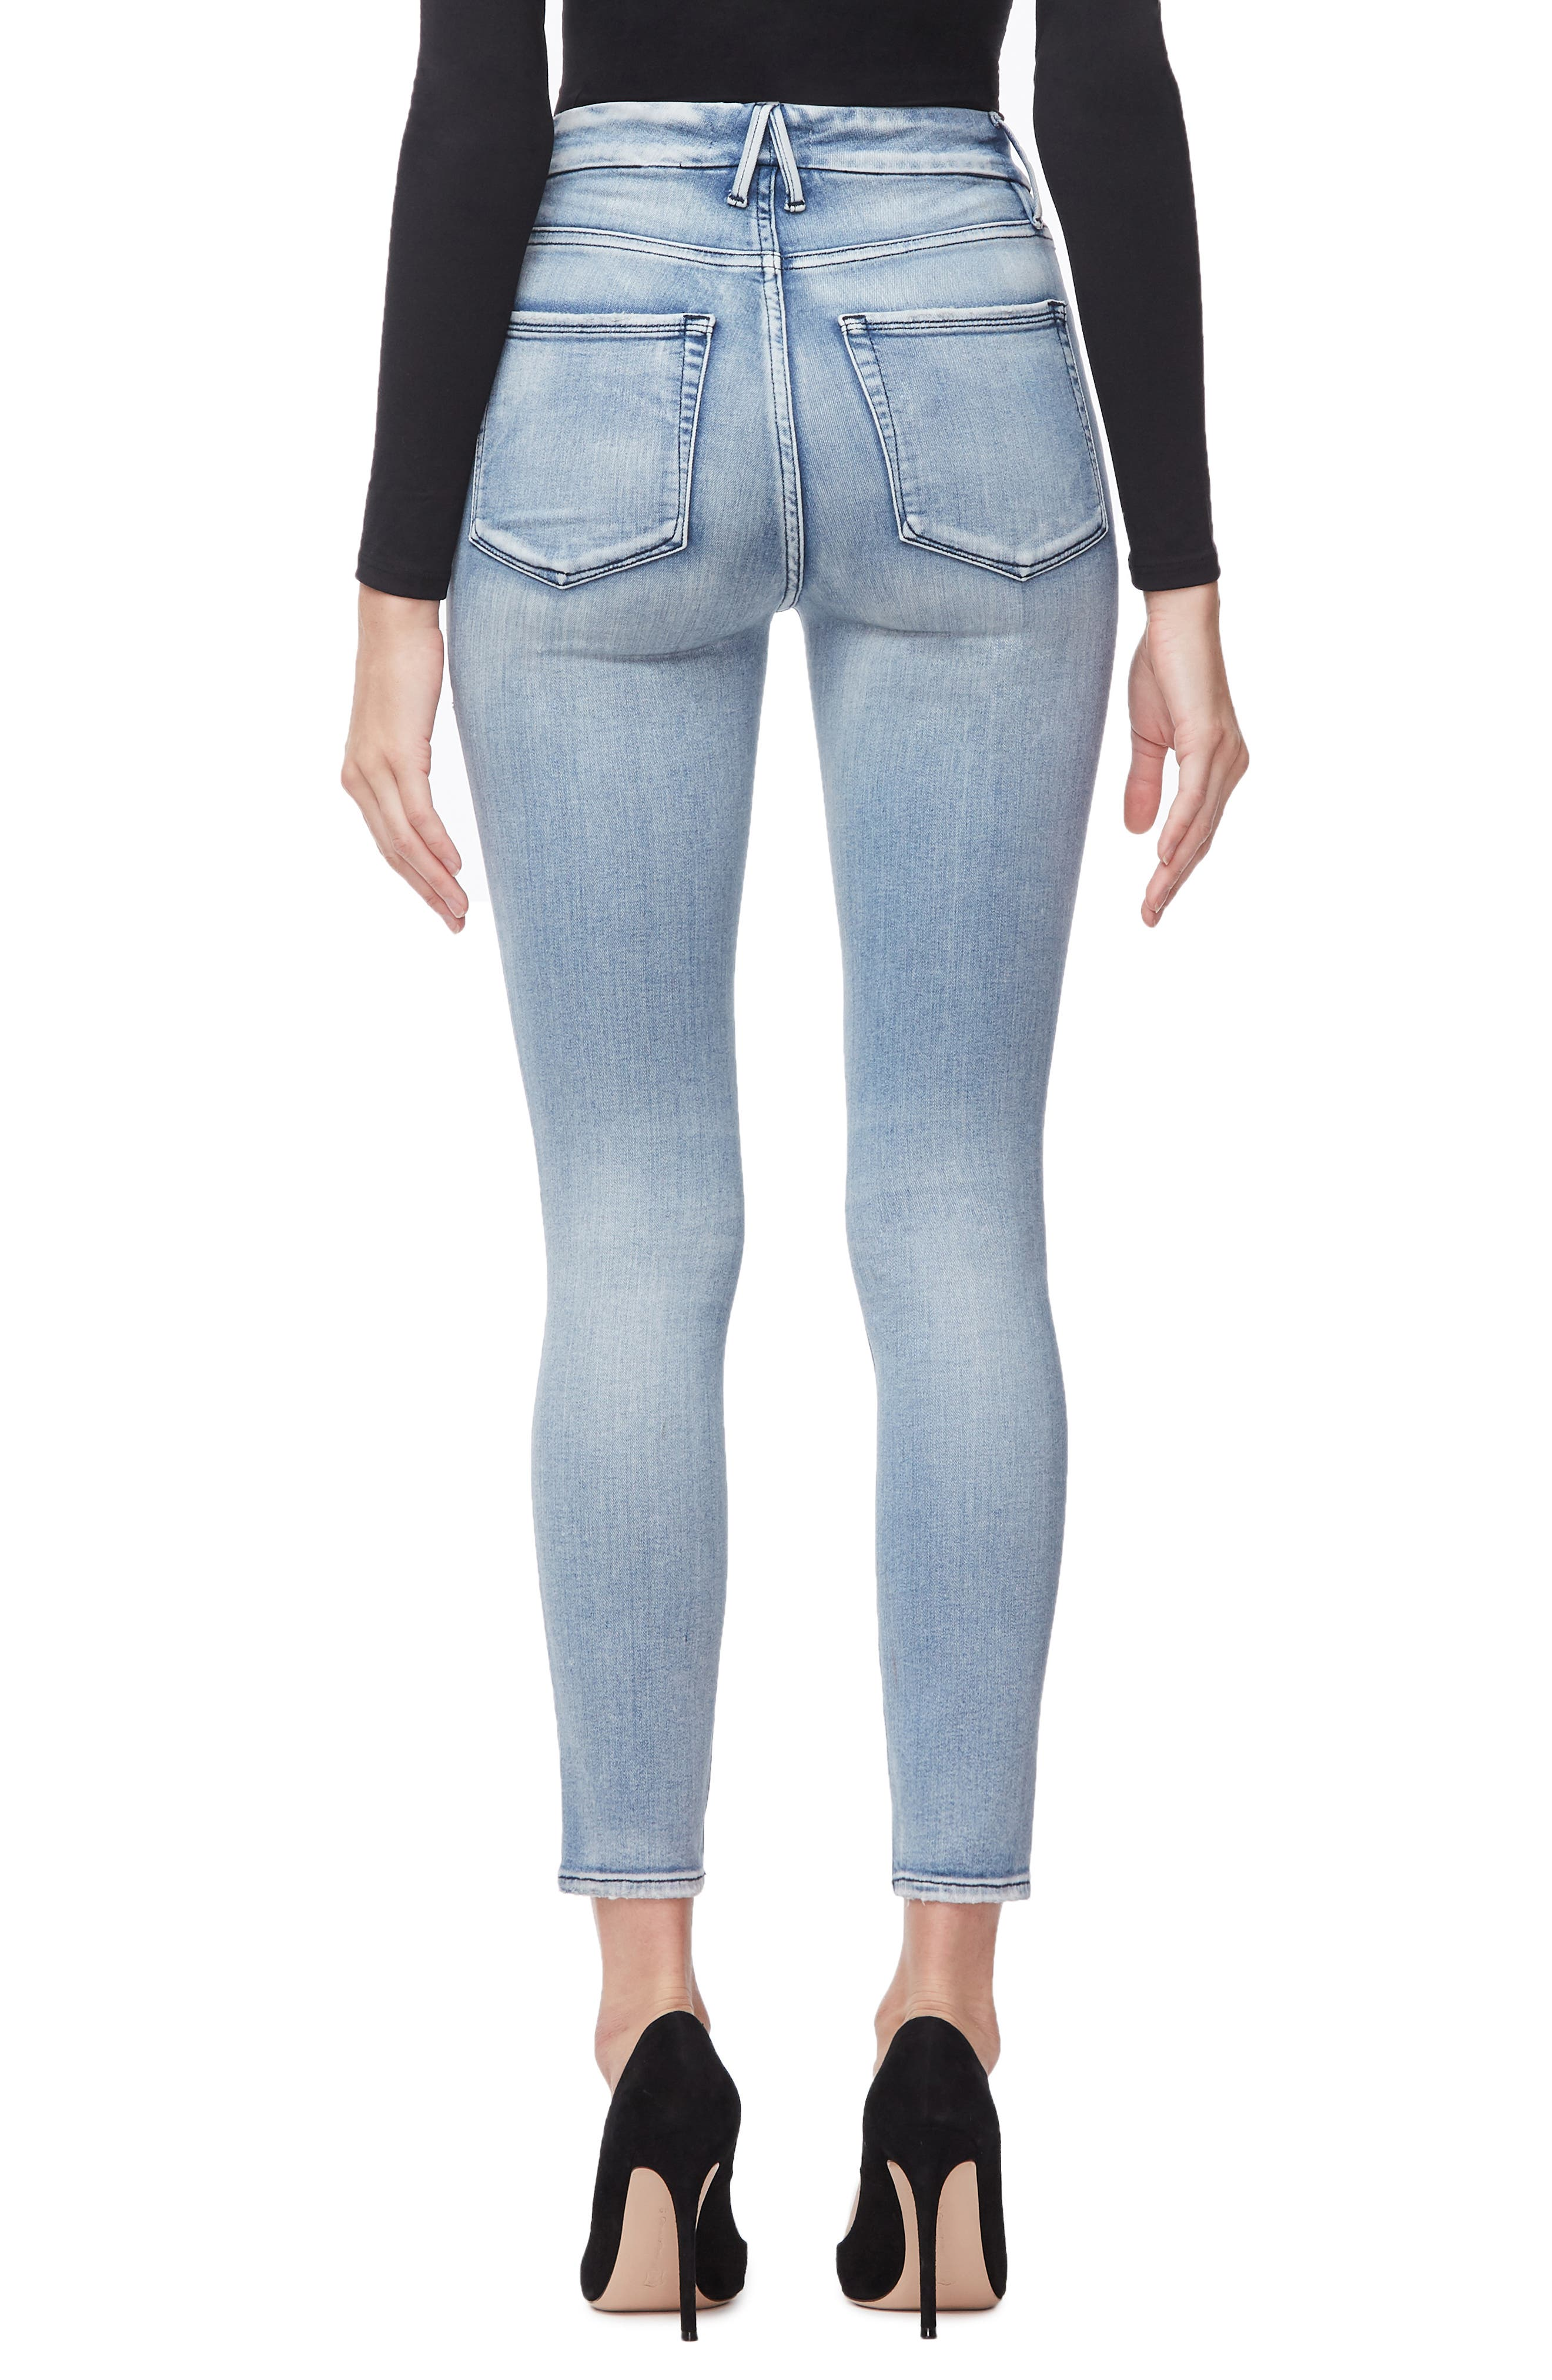 GOOD AMERICAN, Good Waist Ripped High Waist Crop Skinny Jeans, Alternate thumbnail 3, color, BLUE250